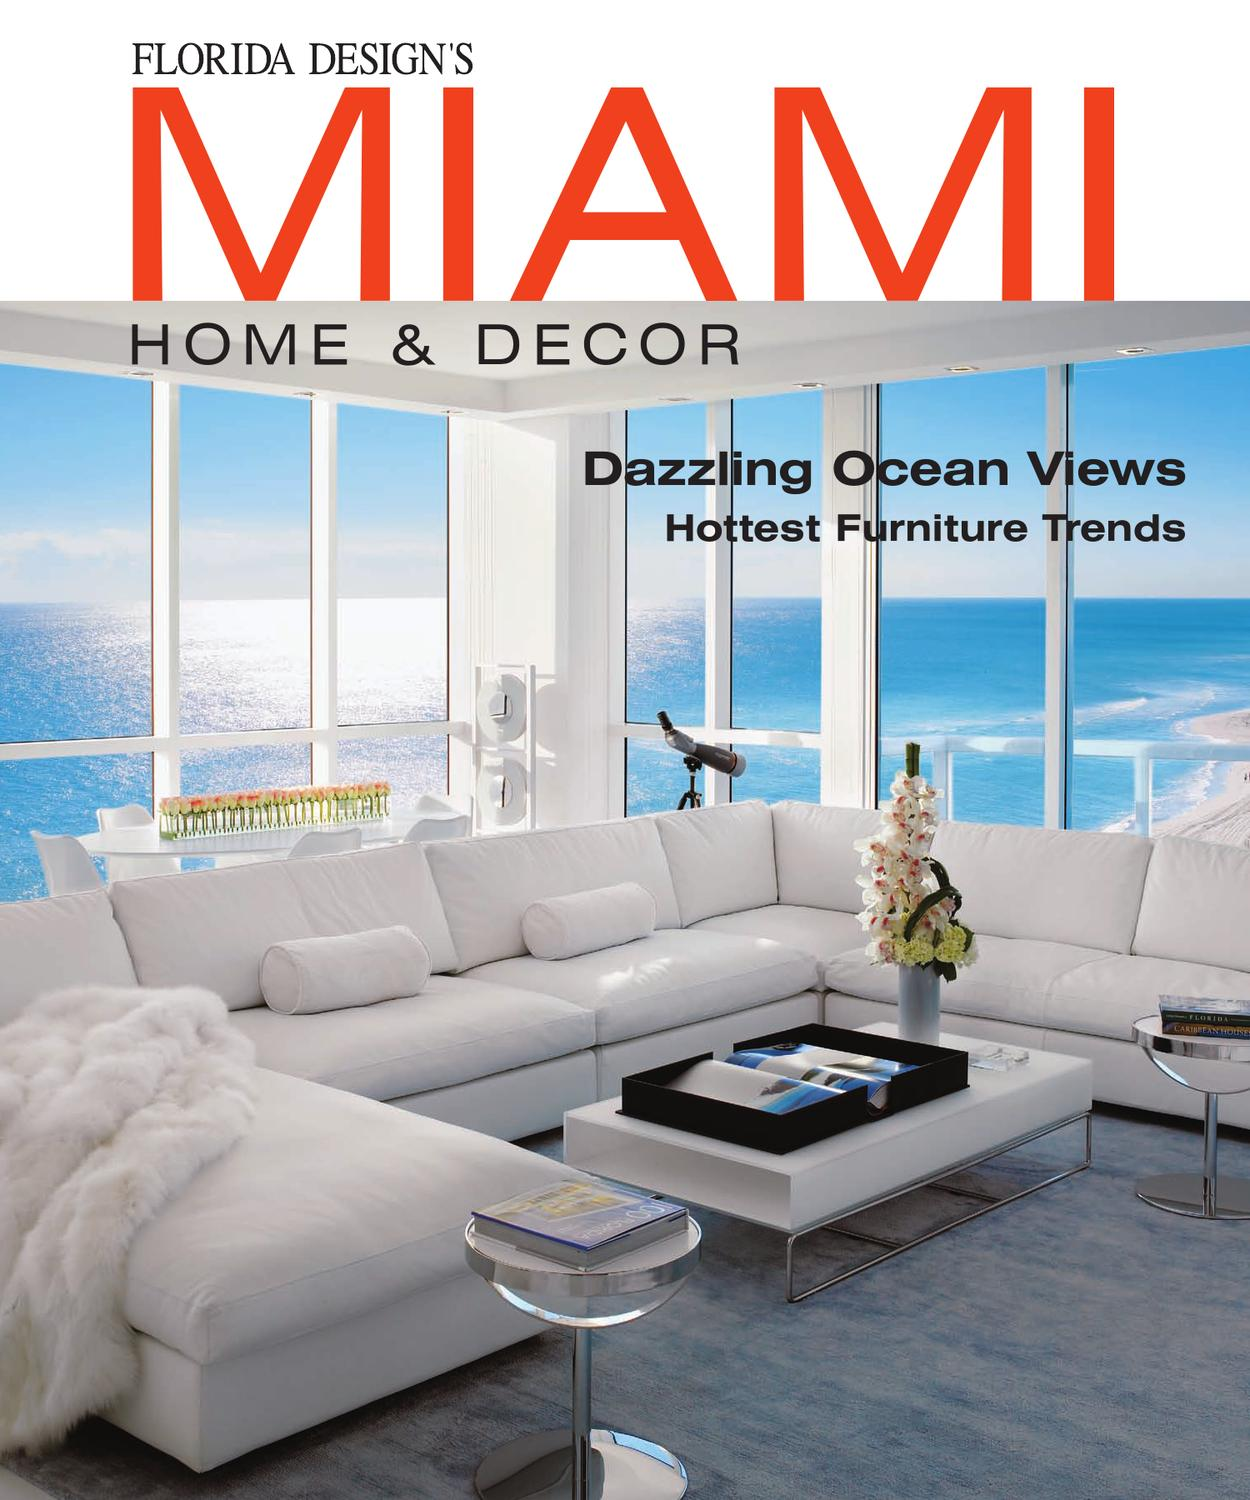 Miami Home & Decor Magazine by Florida Design Inc. - issuu